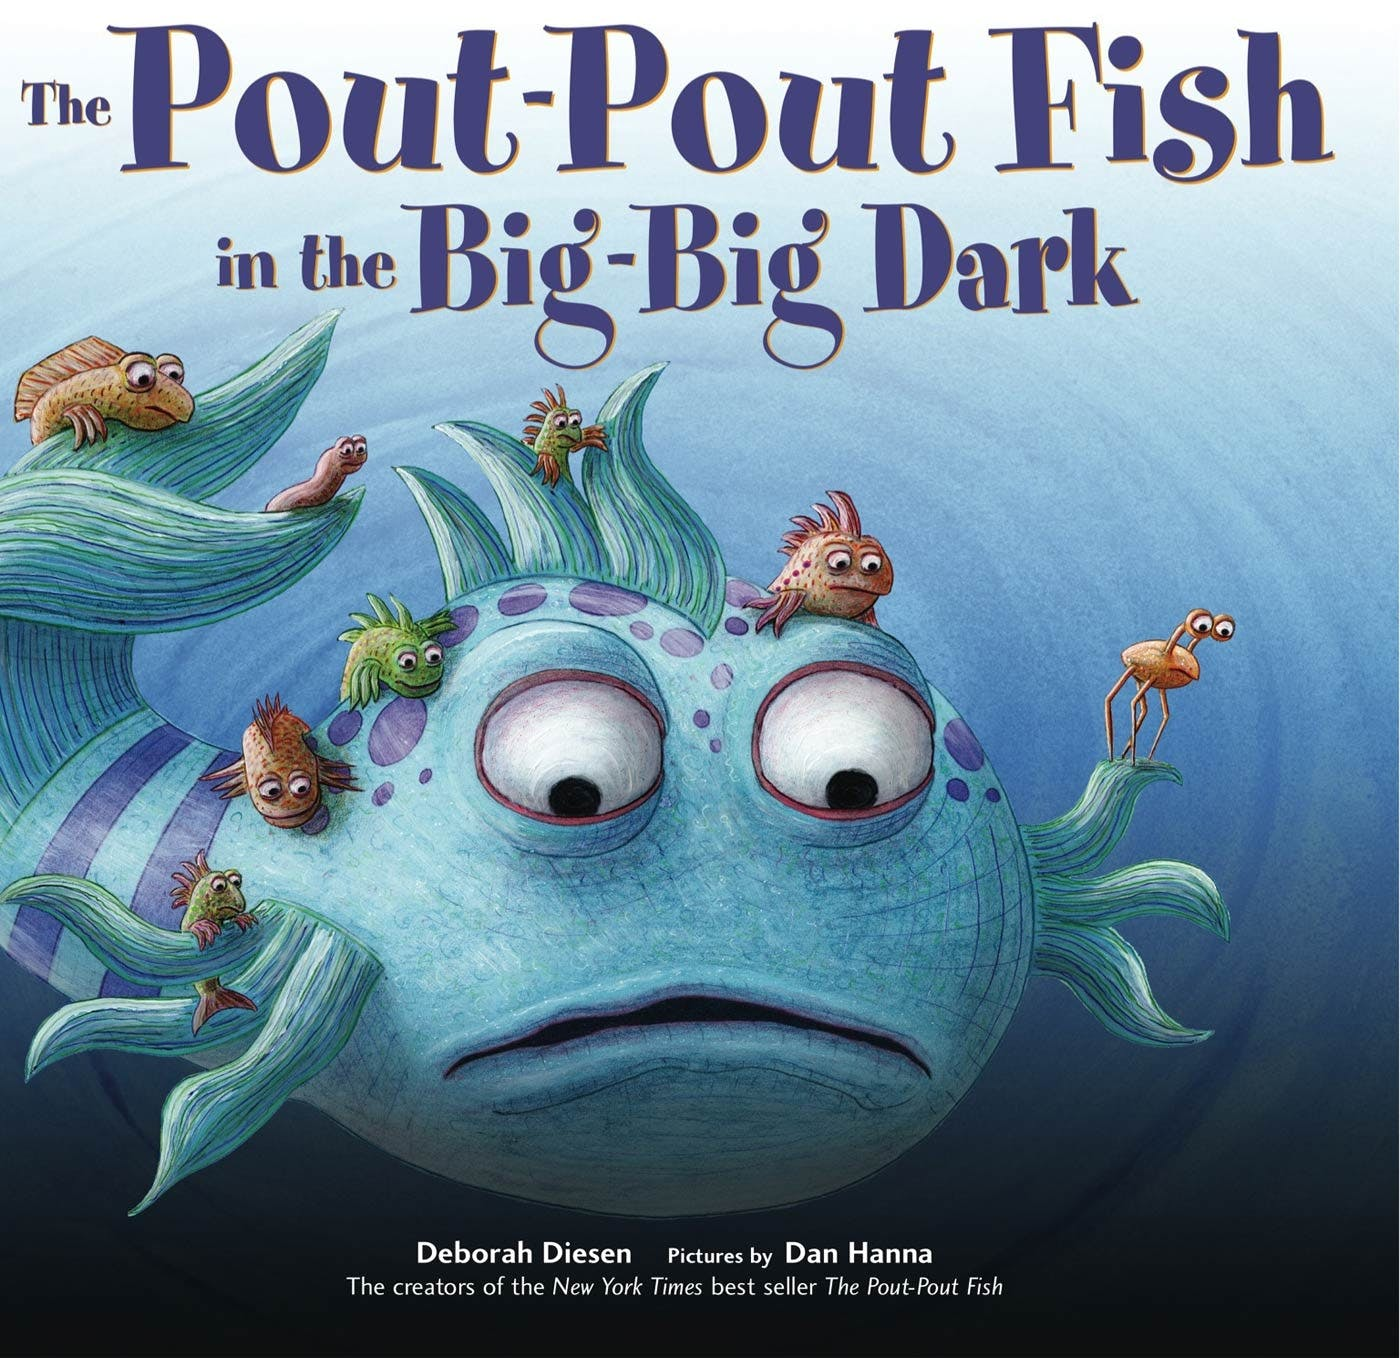 Image of The Pout-Pout Fish in the Big-Big Dark